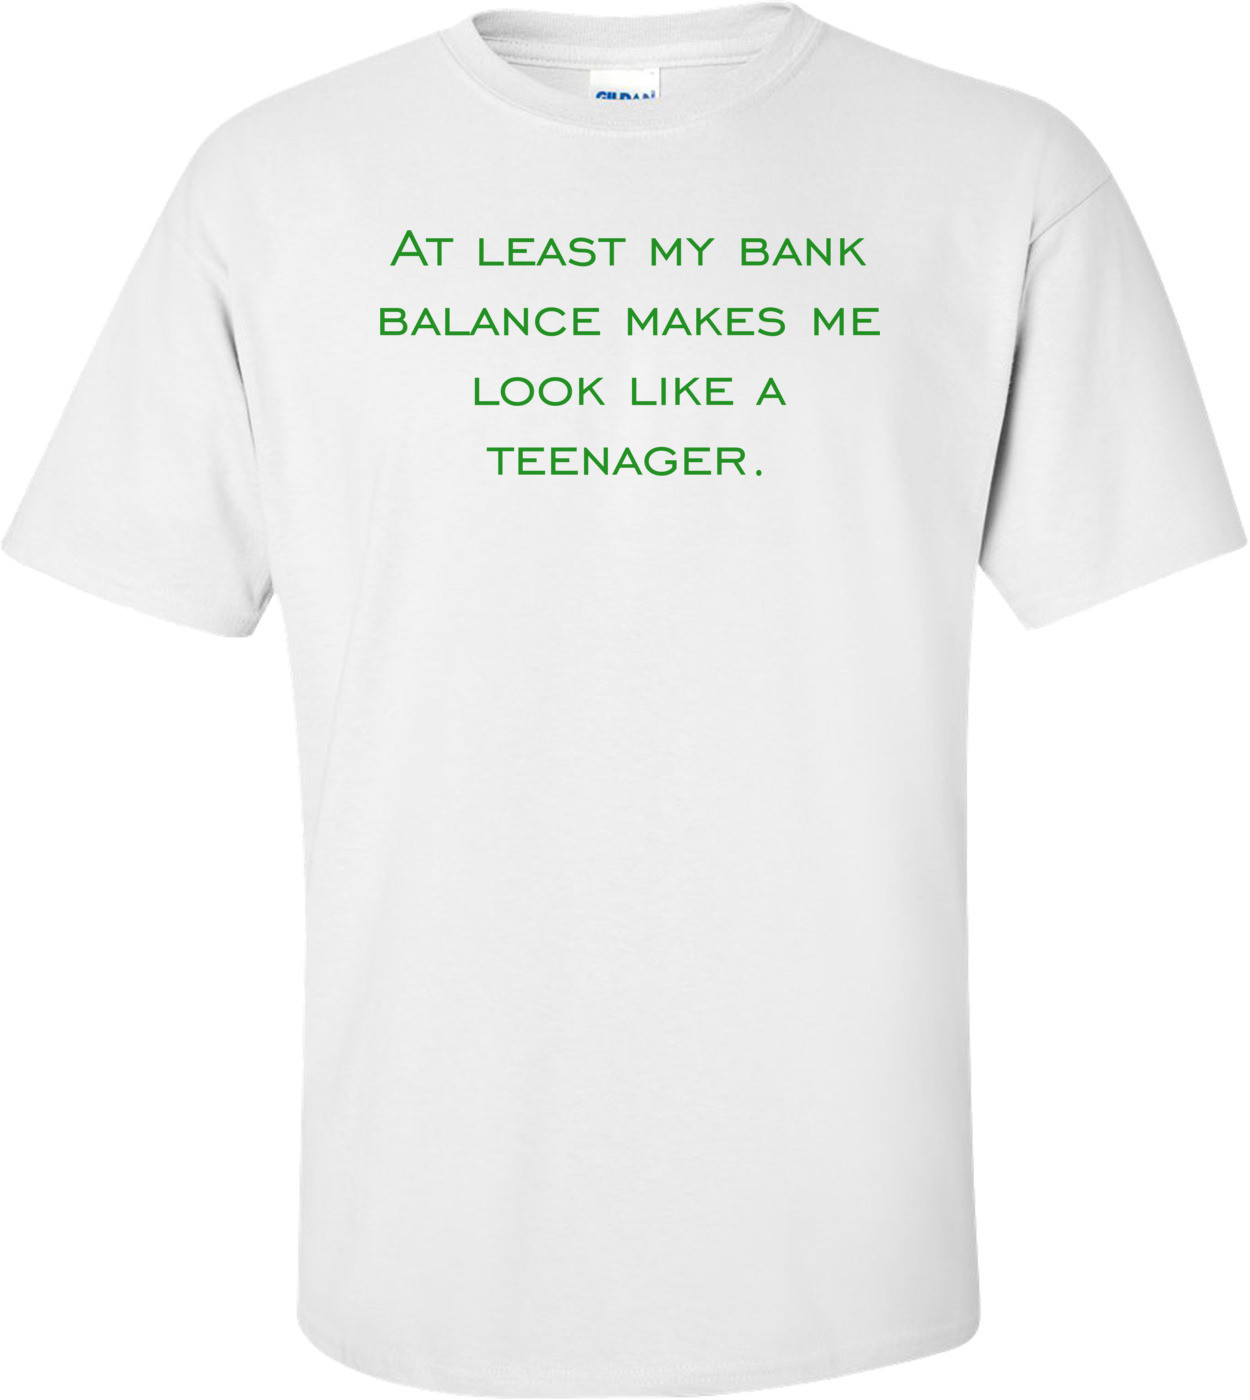 At least my bank balance makes me look like a teenager. Shirt